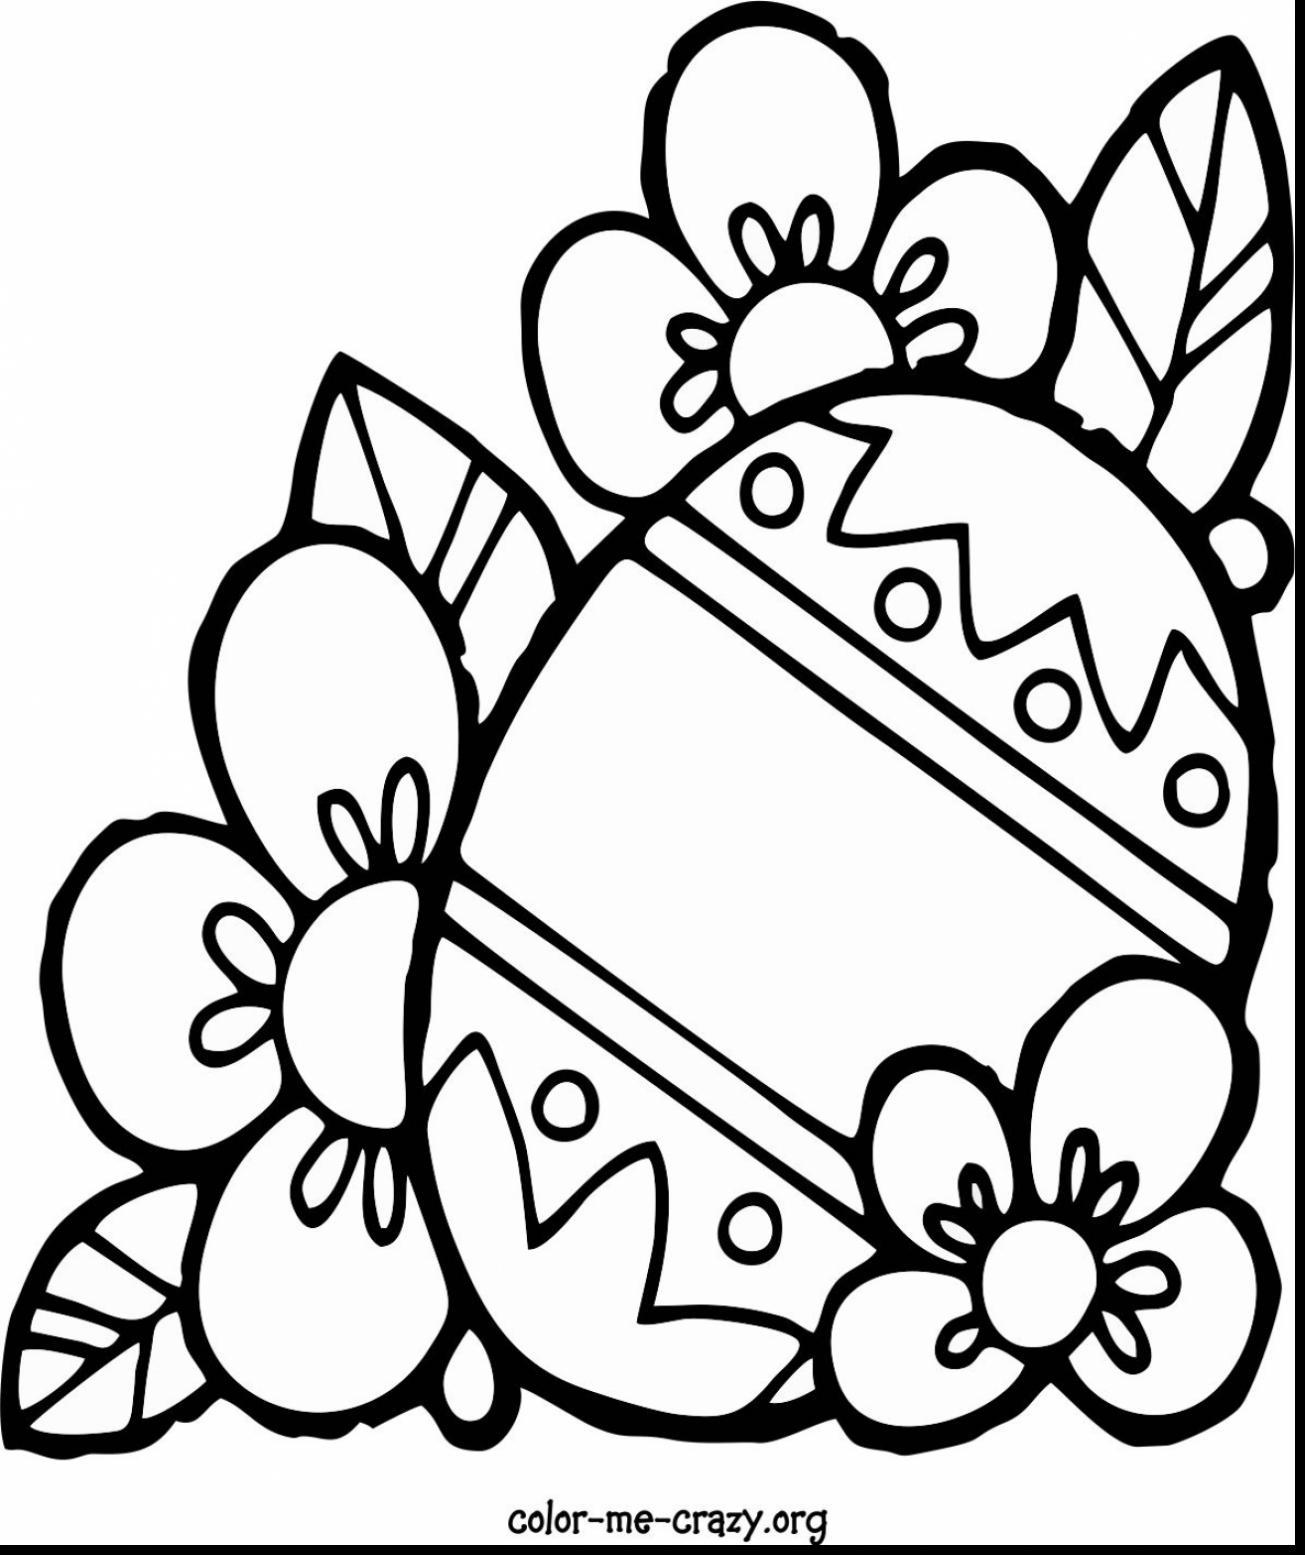 1305x1555 Best Fresh Coloring Pages Color Printing Flower For Pic Of Crazy